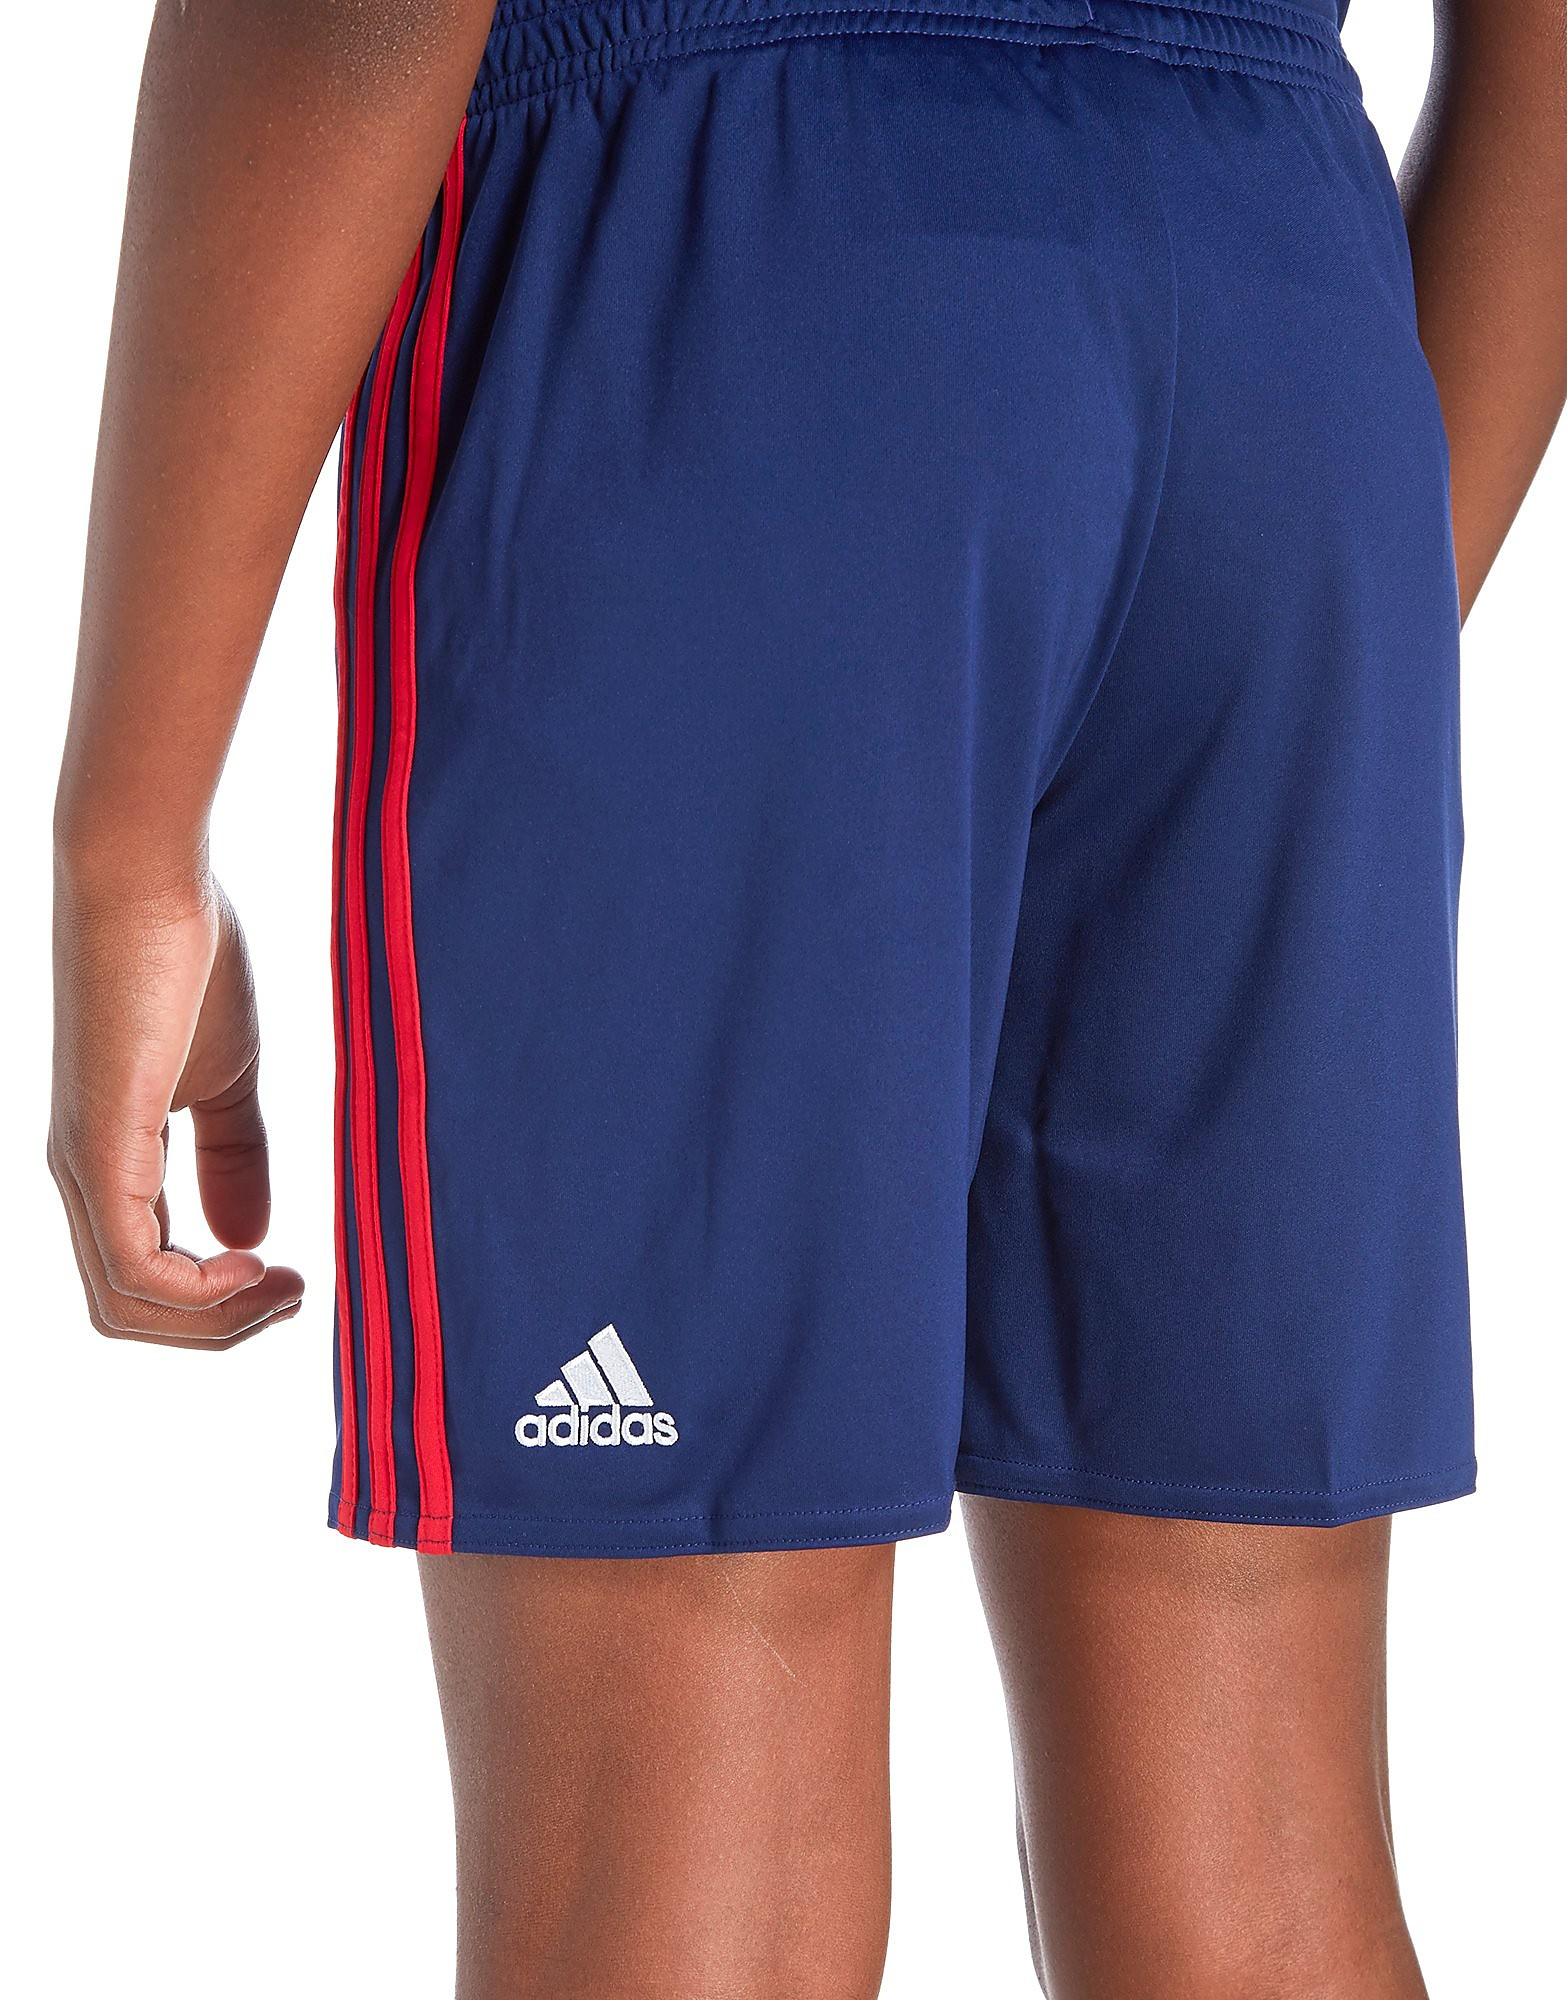 adidas Ajax 2017/18 Away Shorts Junior